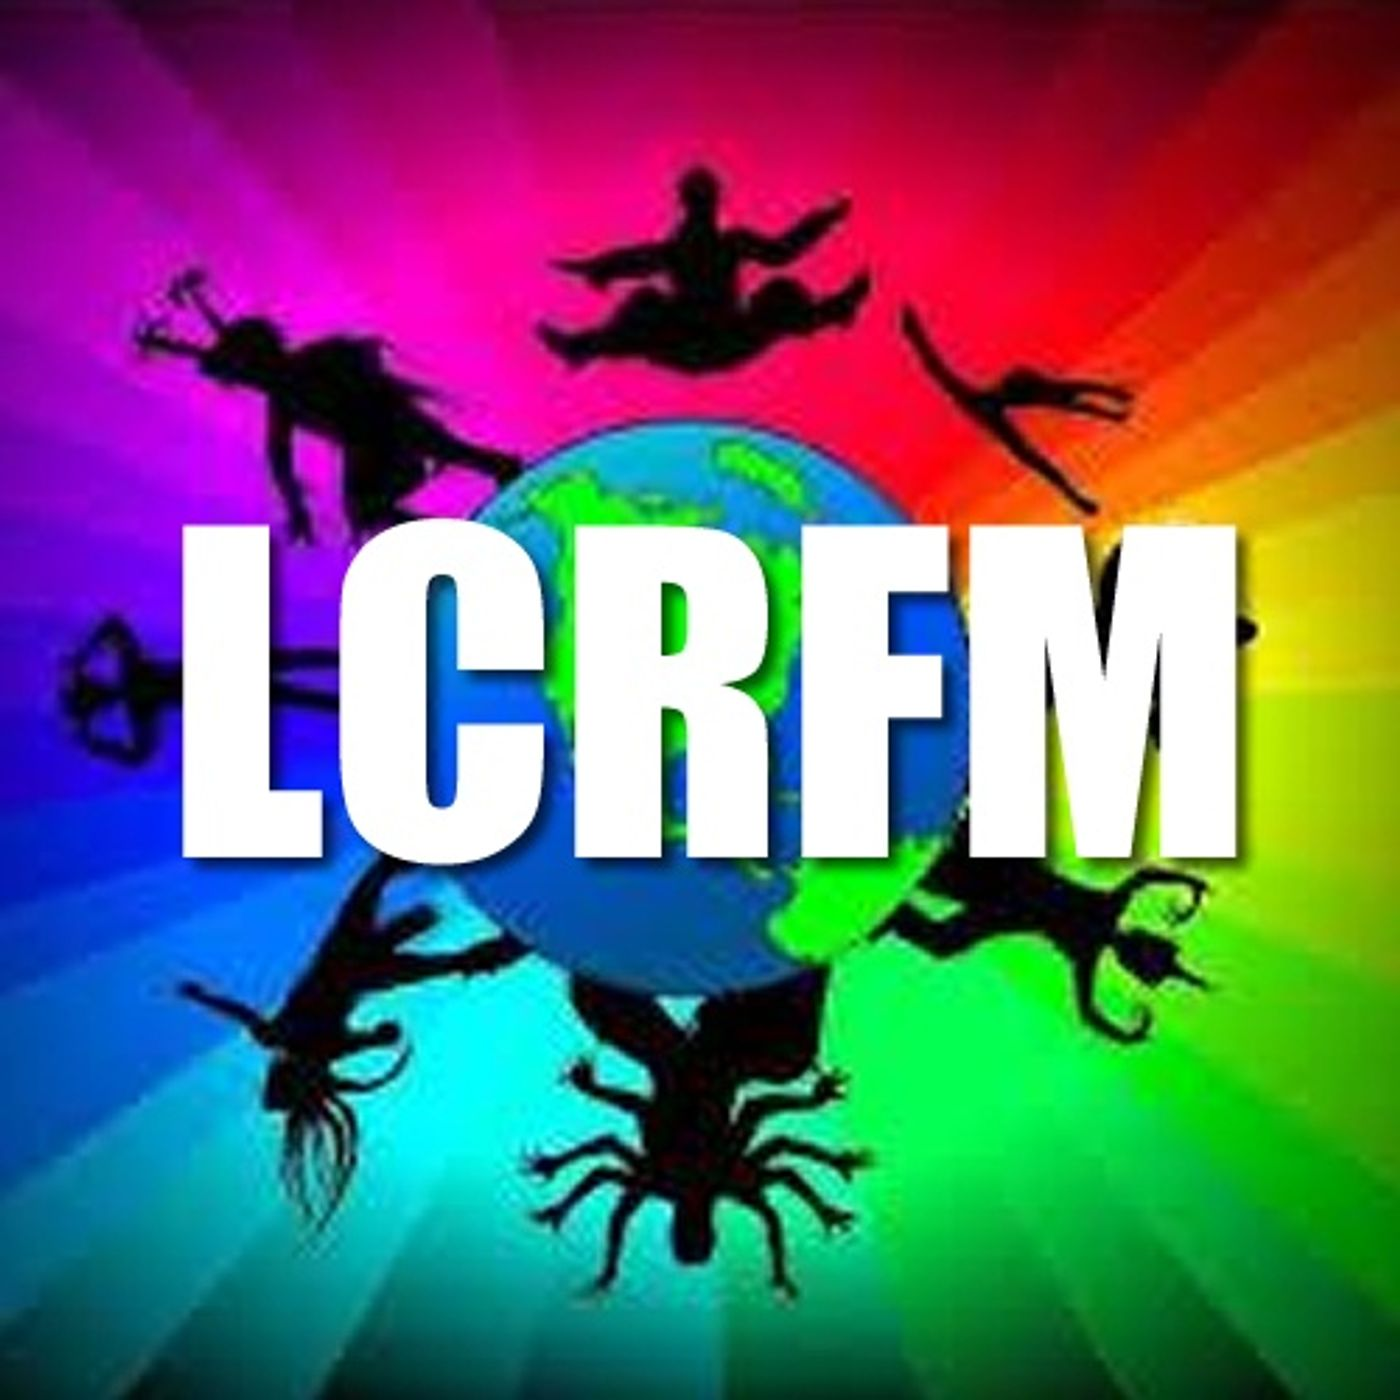 LCRFM.net I will have you in Disco Heaven ... Join me ... 8PM GMT .... 90+Minutes .... email andros@lcrfm.net